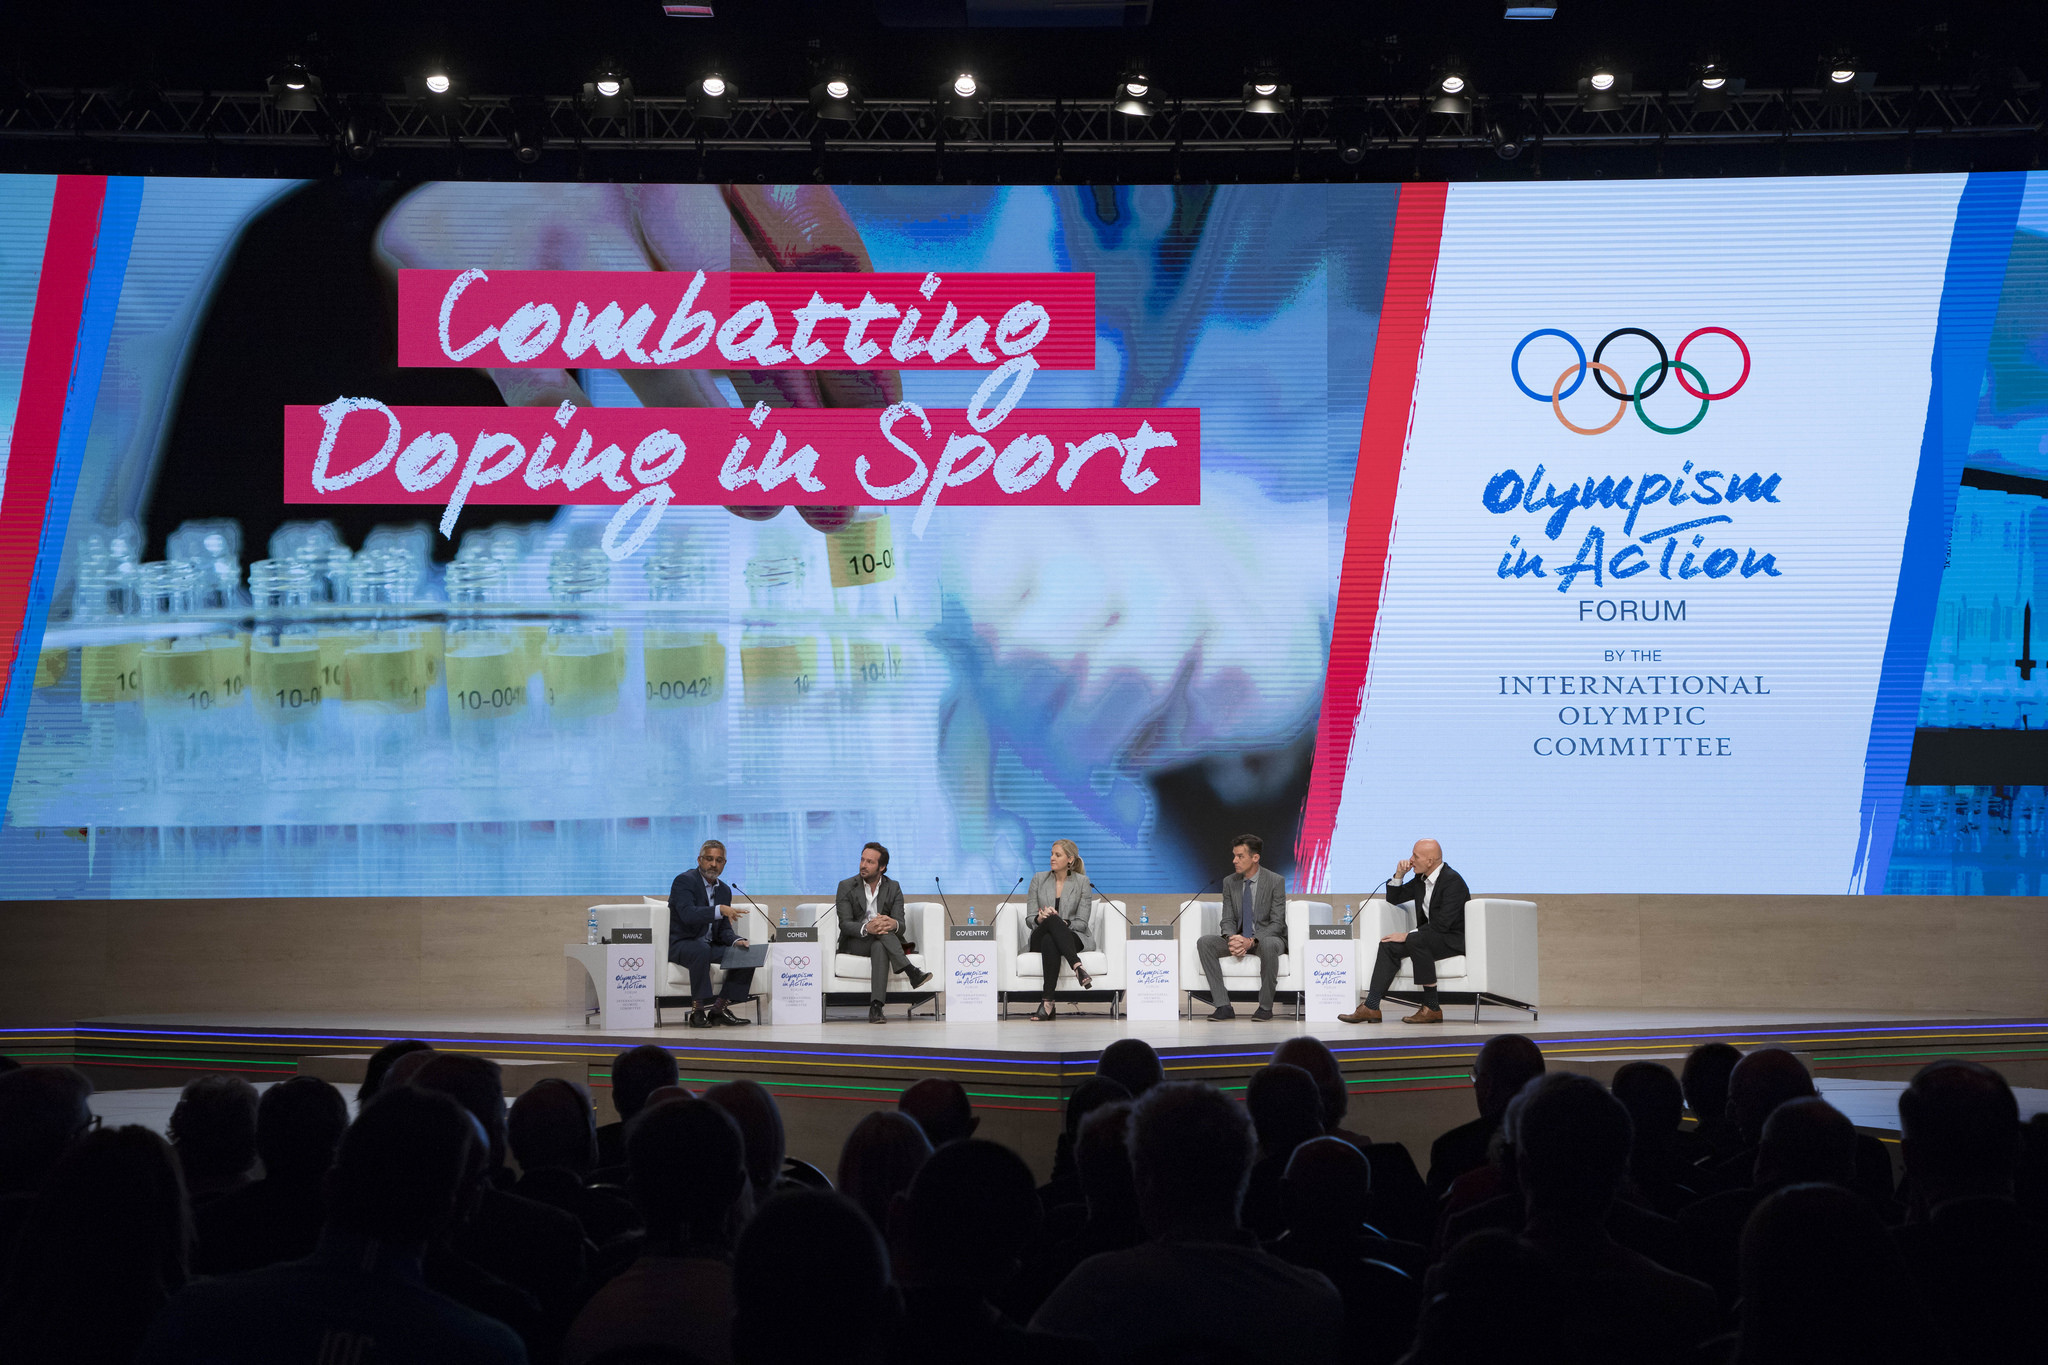 The International Paralympic Committee were praised for their tough stance on Russia during a session on doping at the Olympism in Action Forum in Buenos Aires ©IOC